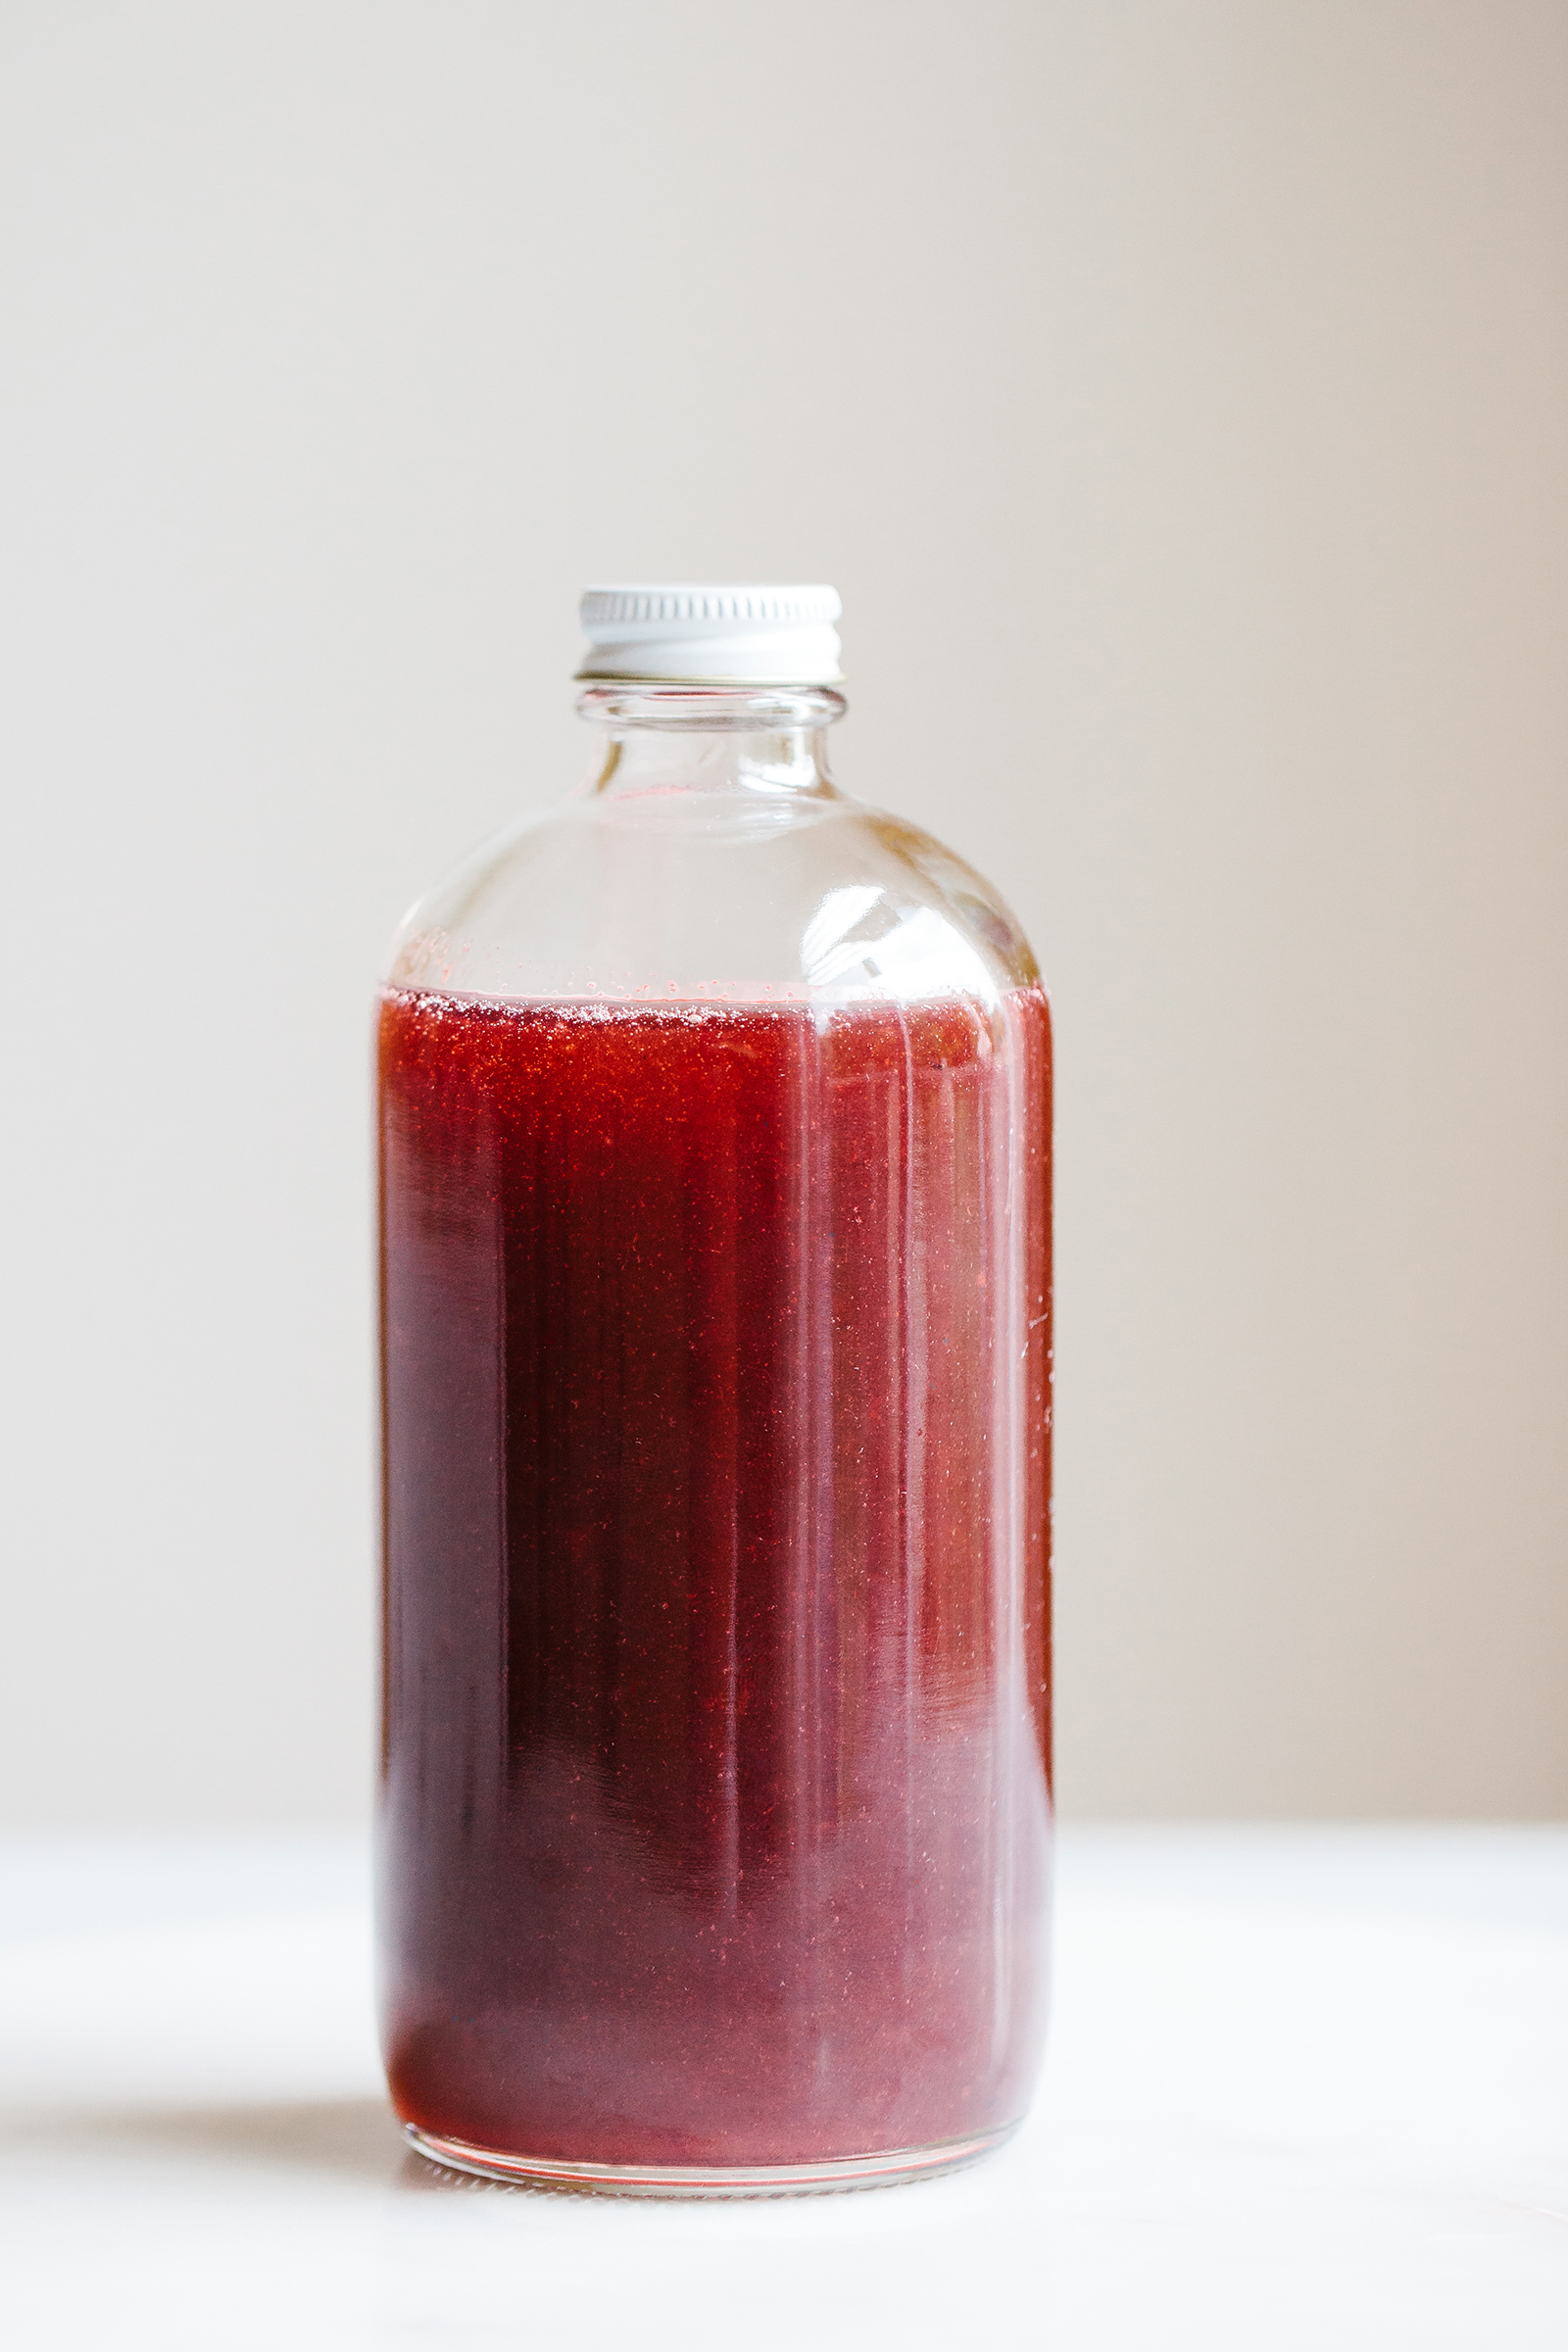 Sparkling Plumcot and Purple Basil Shrub | Now, Forager | Teresa Floyd